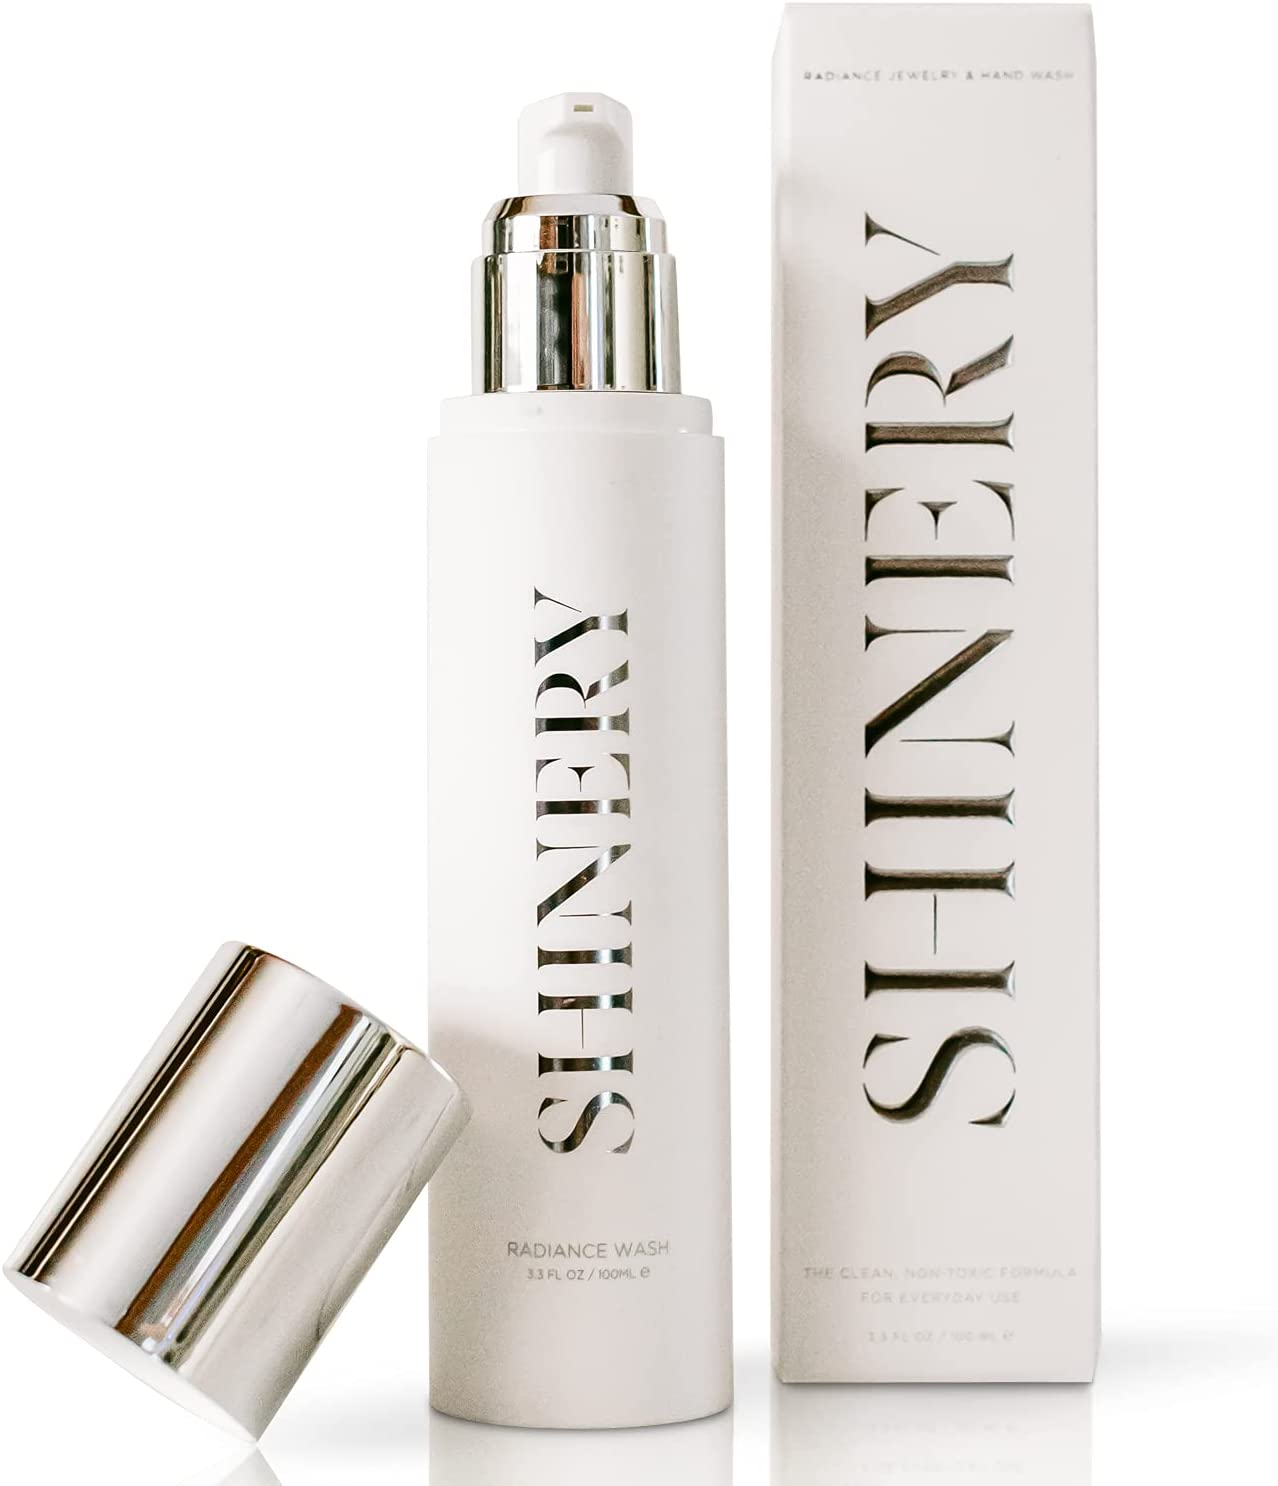 Shinery New York Mall Radiance Rare Wash Jewelry All Cleaner Solution for